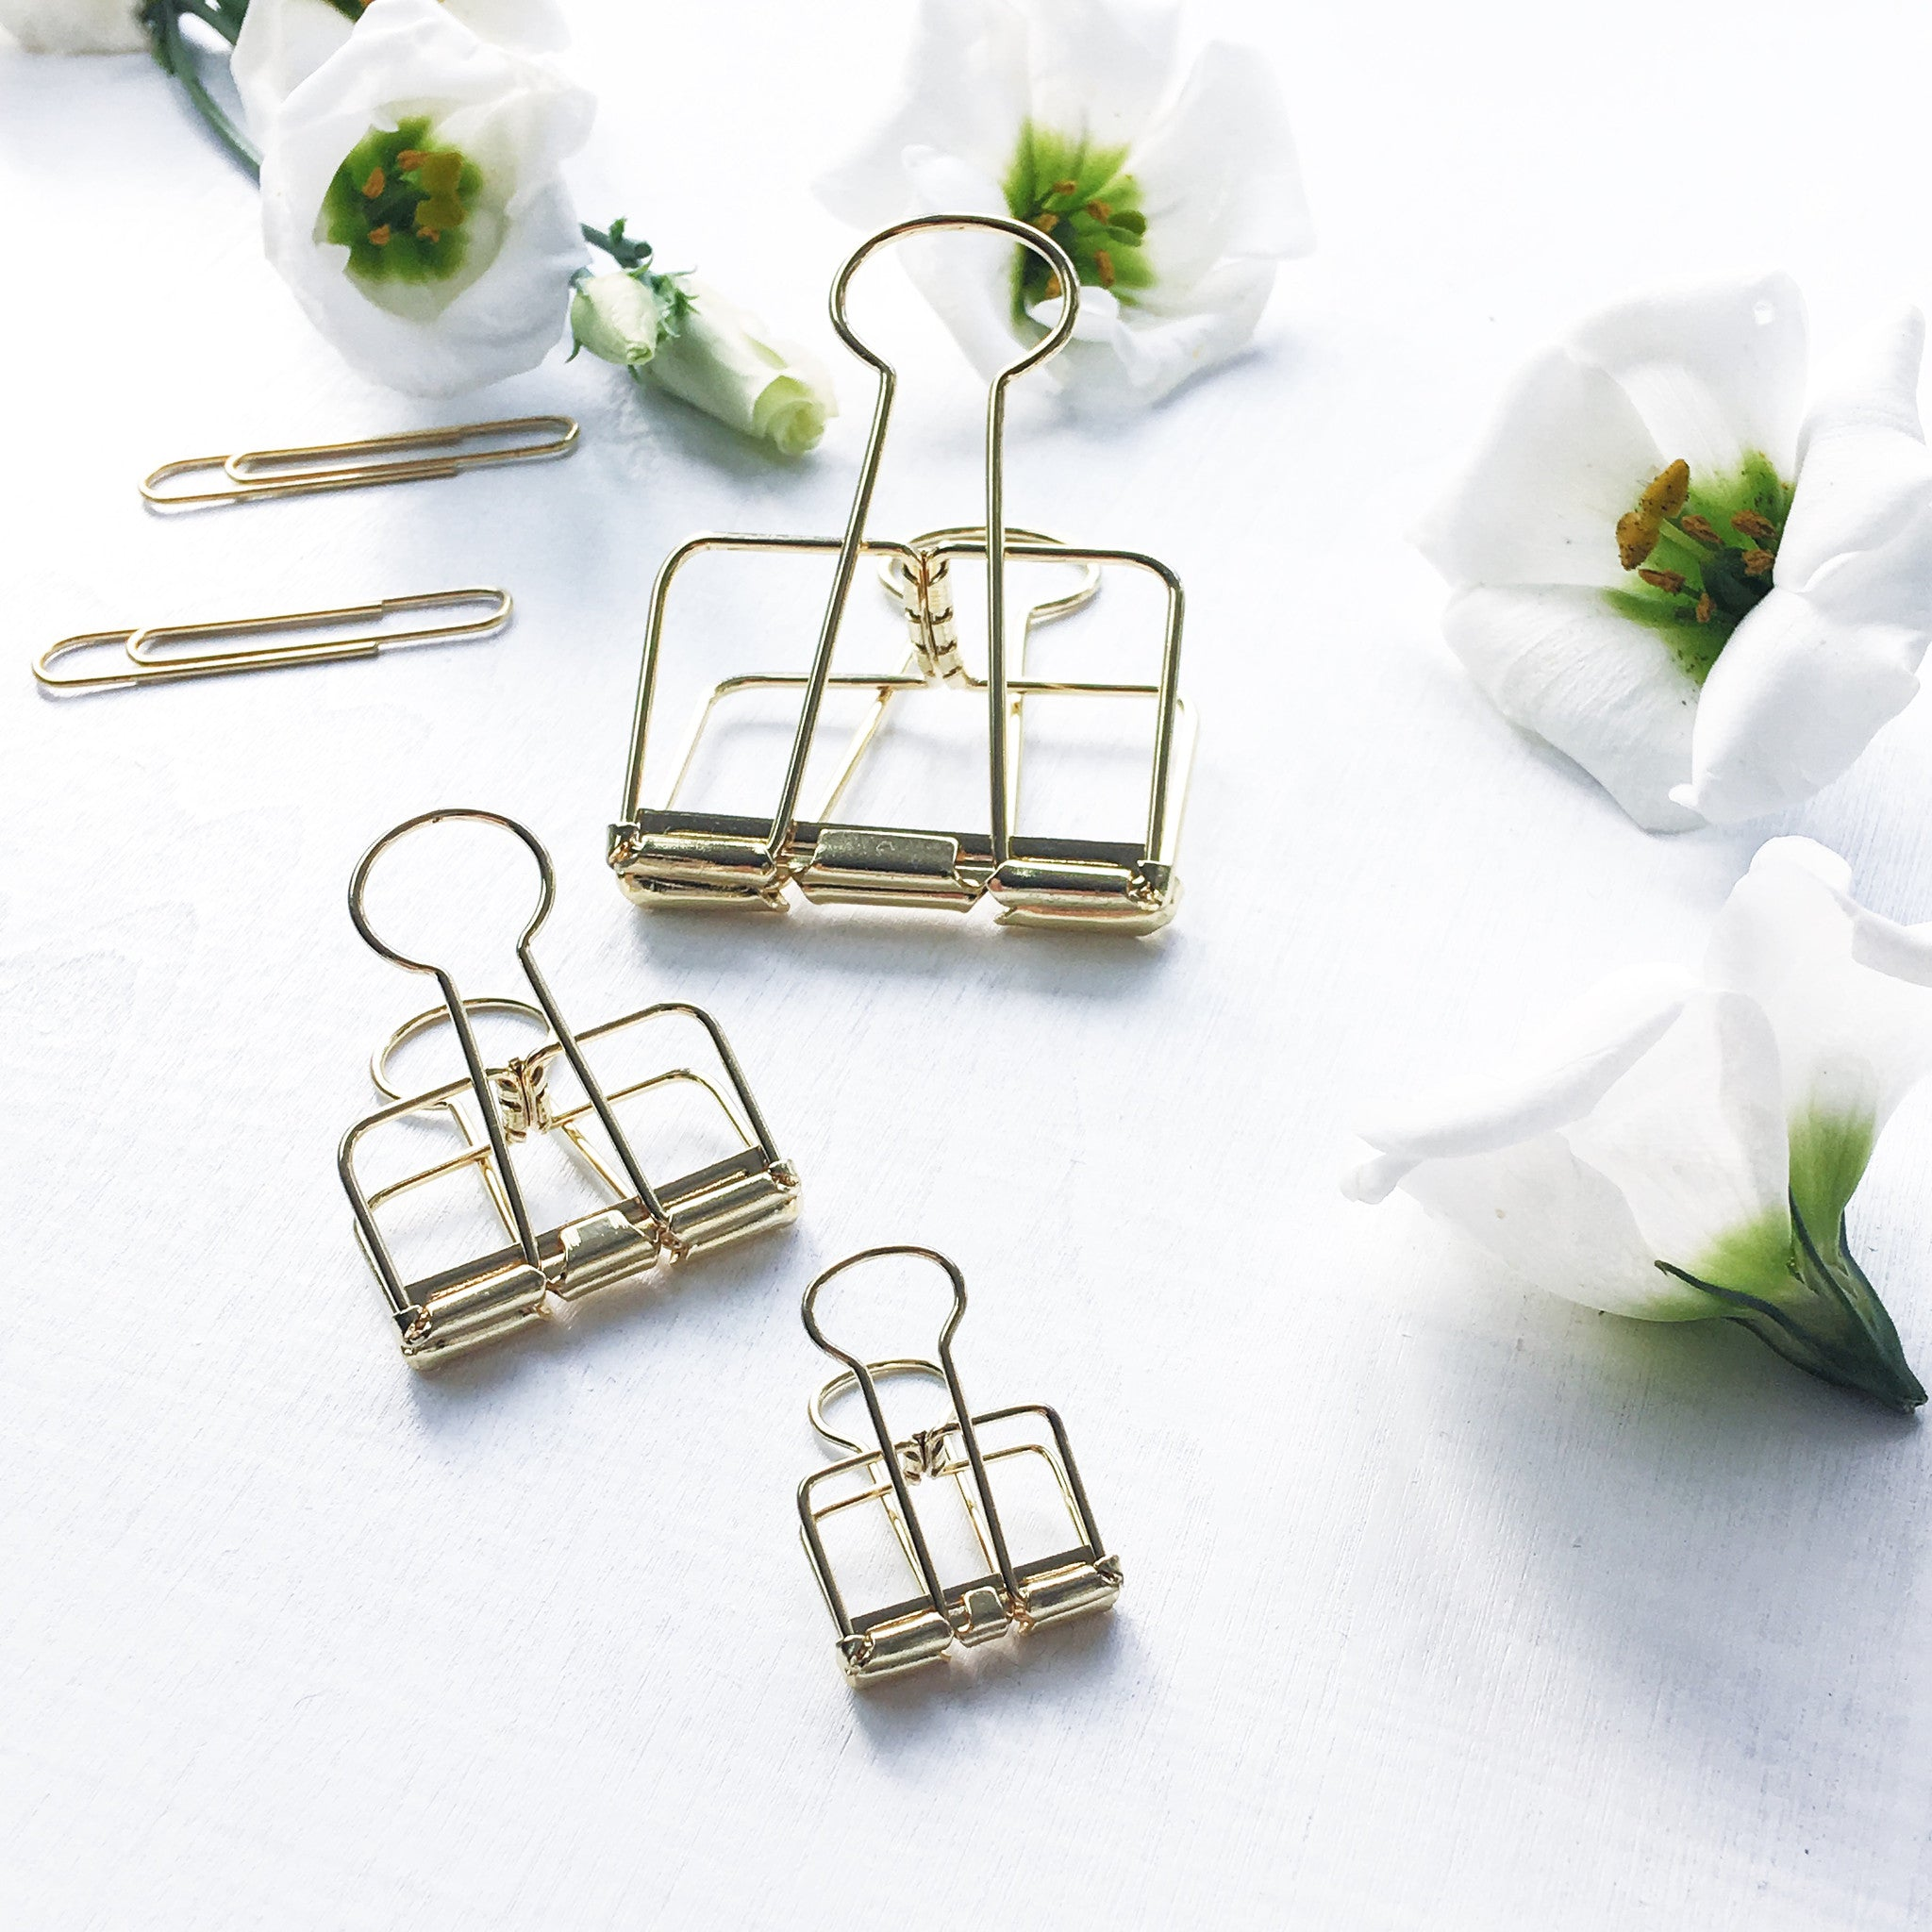 ELLA ICONIC Skeleton Binder Clips | Gold Binder Clips | Skeleton Binder Clips